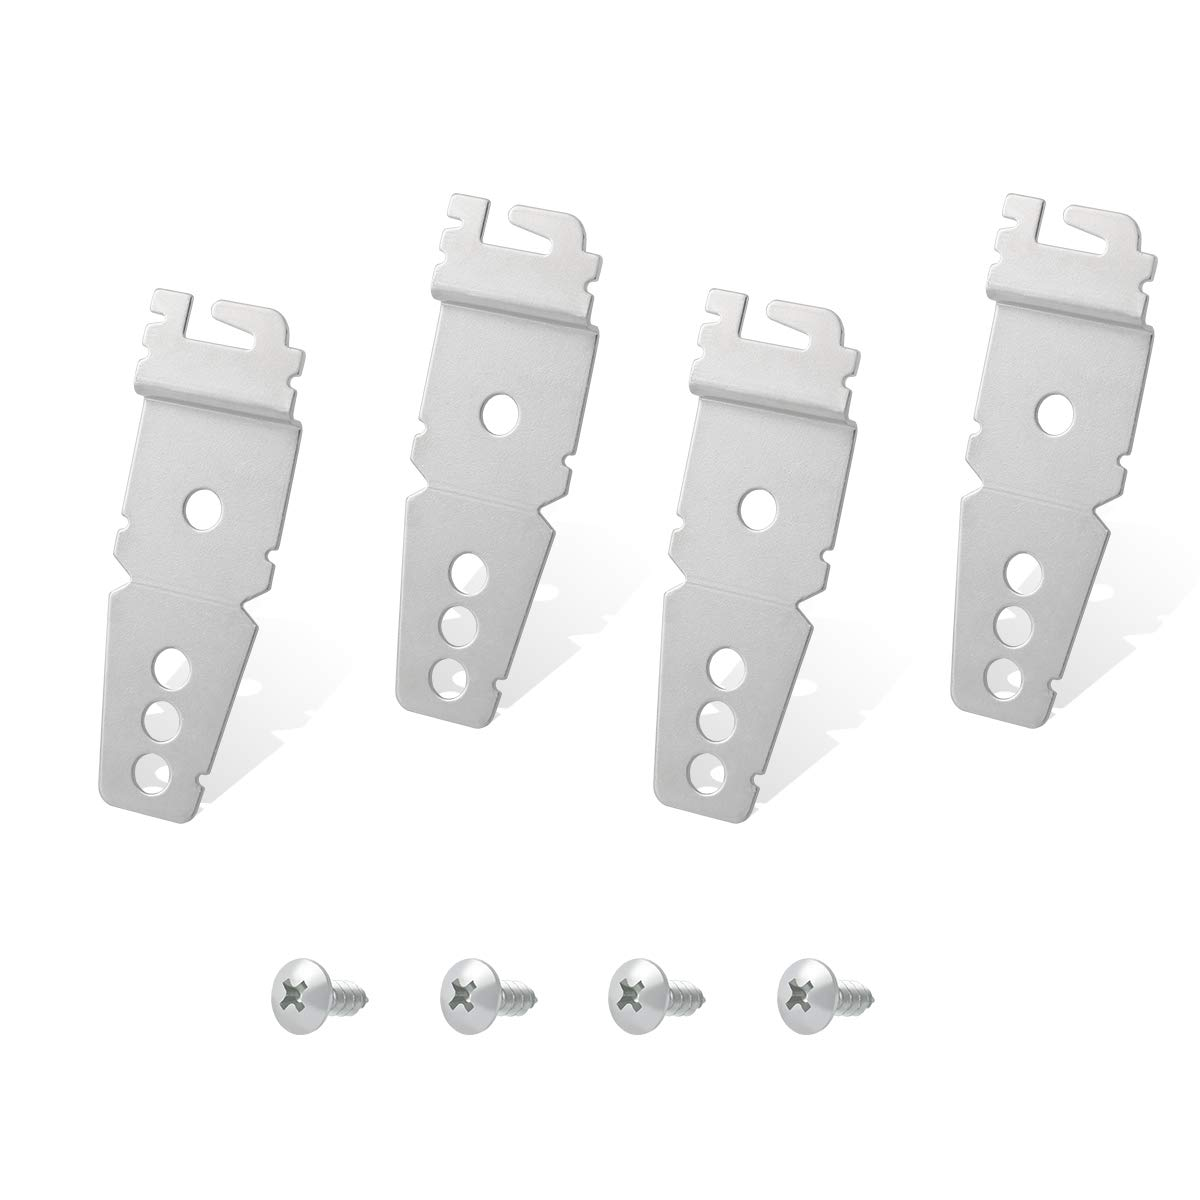 Lenink 8269145 Undercounter Dishwasher Replacement Mounting Bracket Kit Compatible with Whirlpool Kenmore Kitchenaid Dishwasher,Compare to 8269145/WP8269145 51XYKZxOtYL